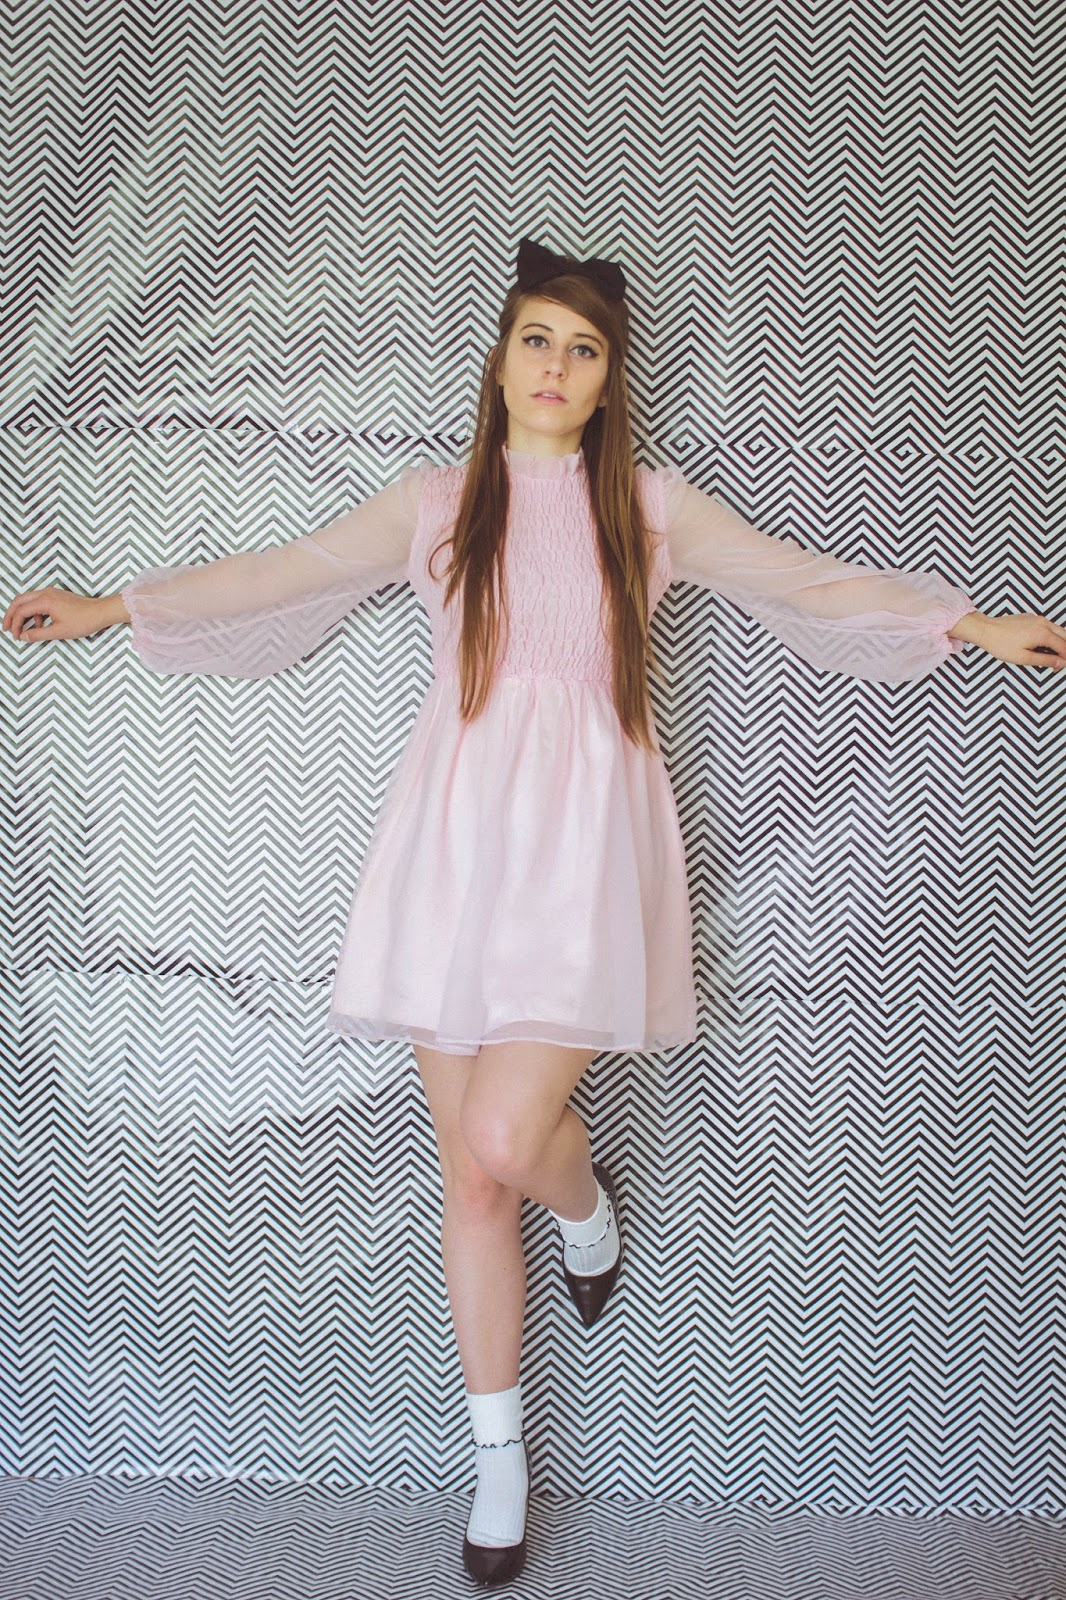 fashion, style, blogger, personal style blogger, movie blogger, pink shift dress, 60's style, socks and heels, bouffant, girly style, cute retro outfit